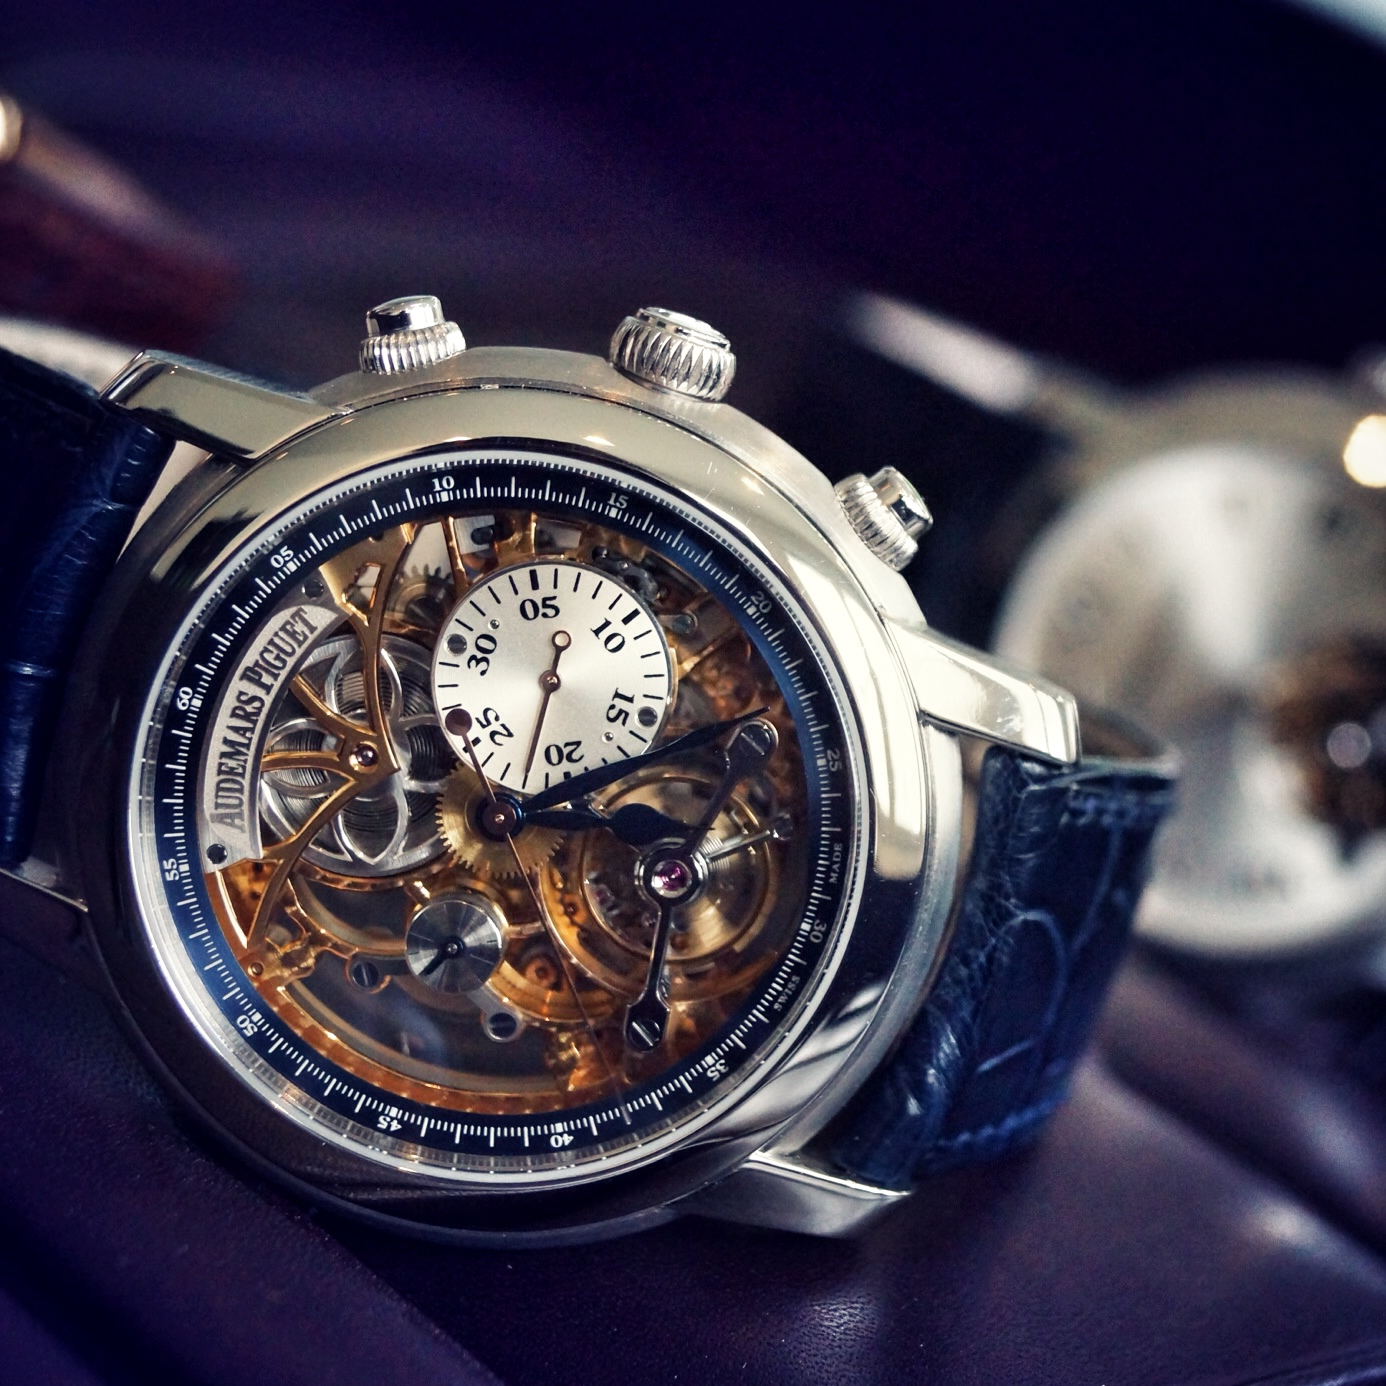 Tourbillon Watch: Audemars Piguet